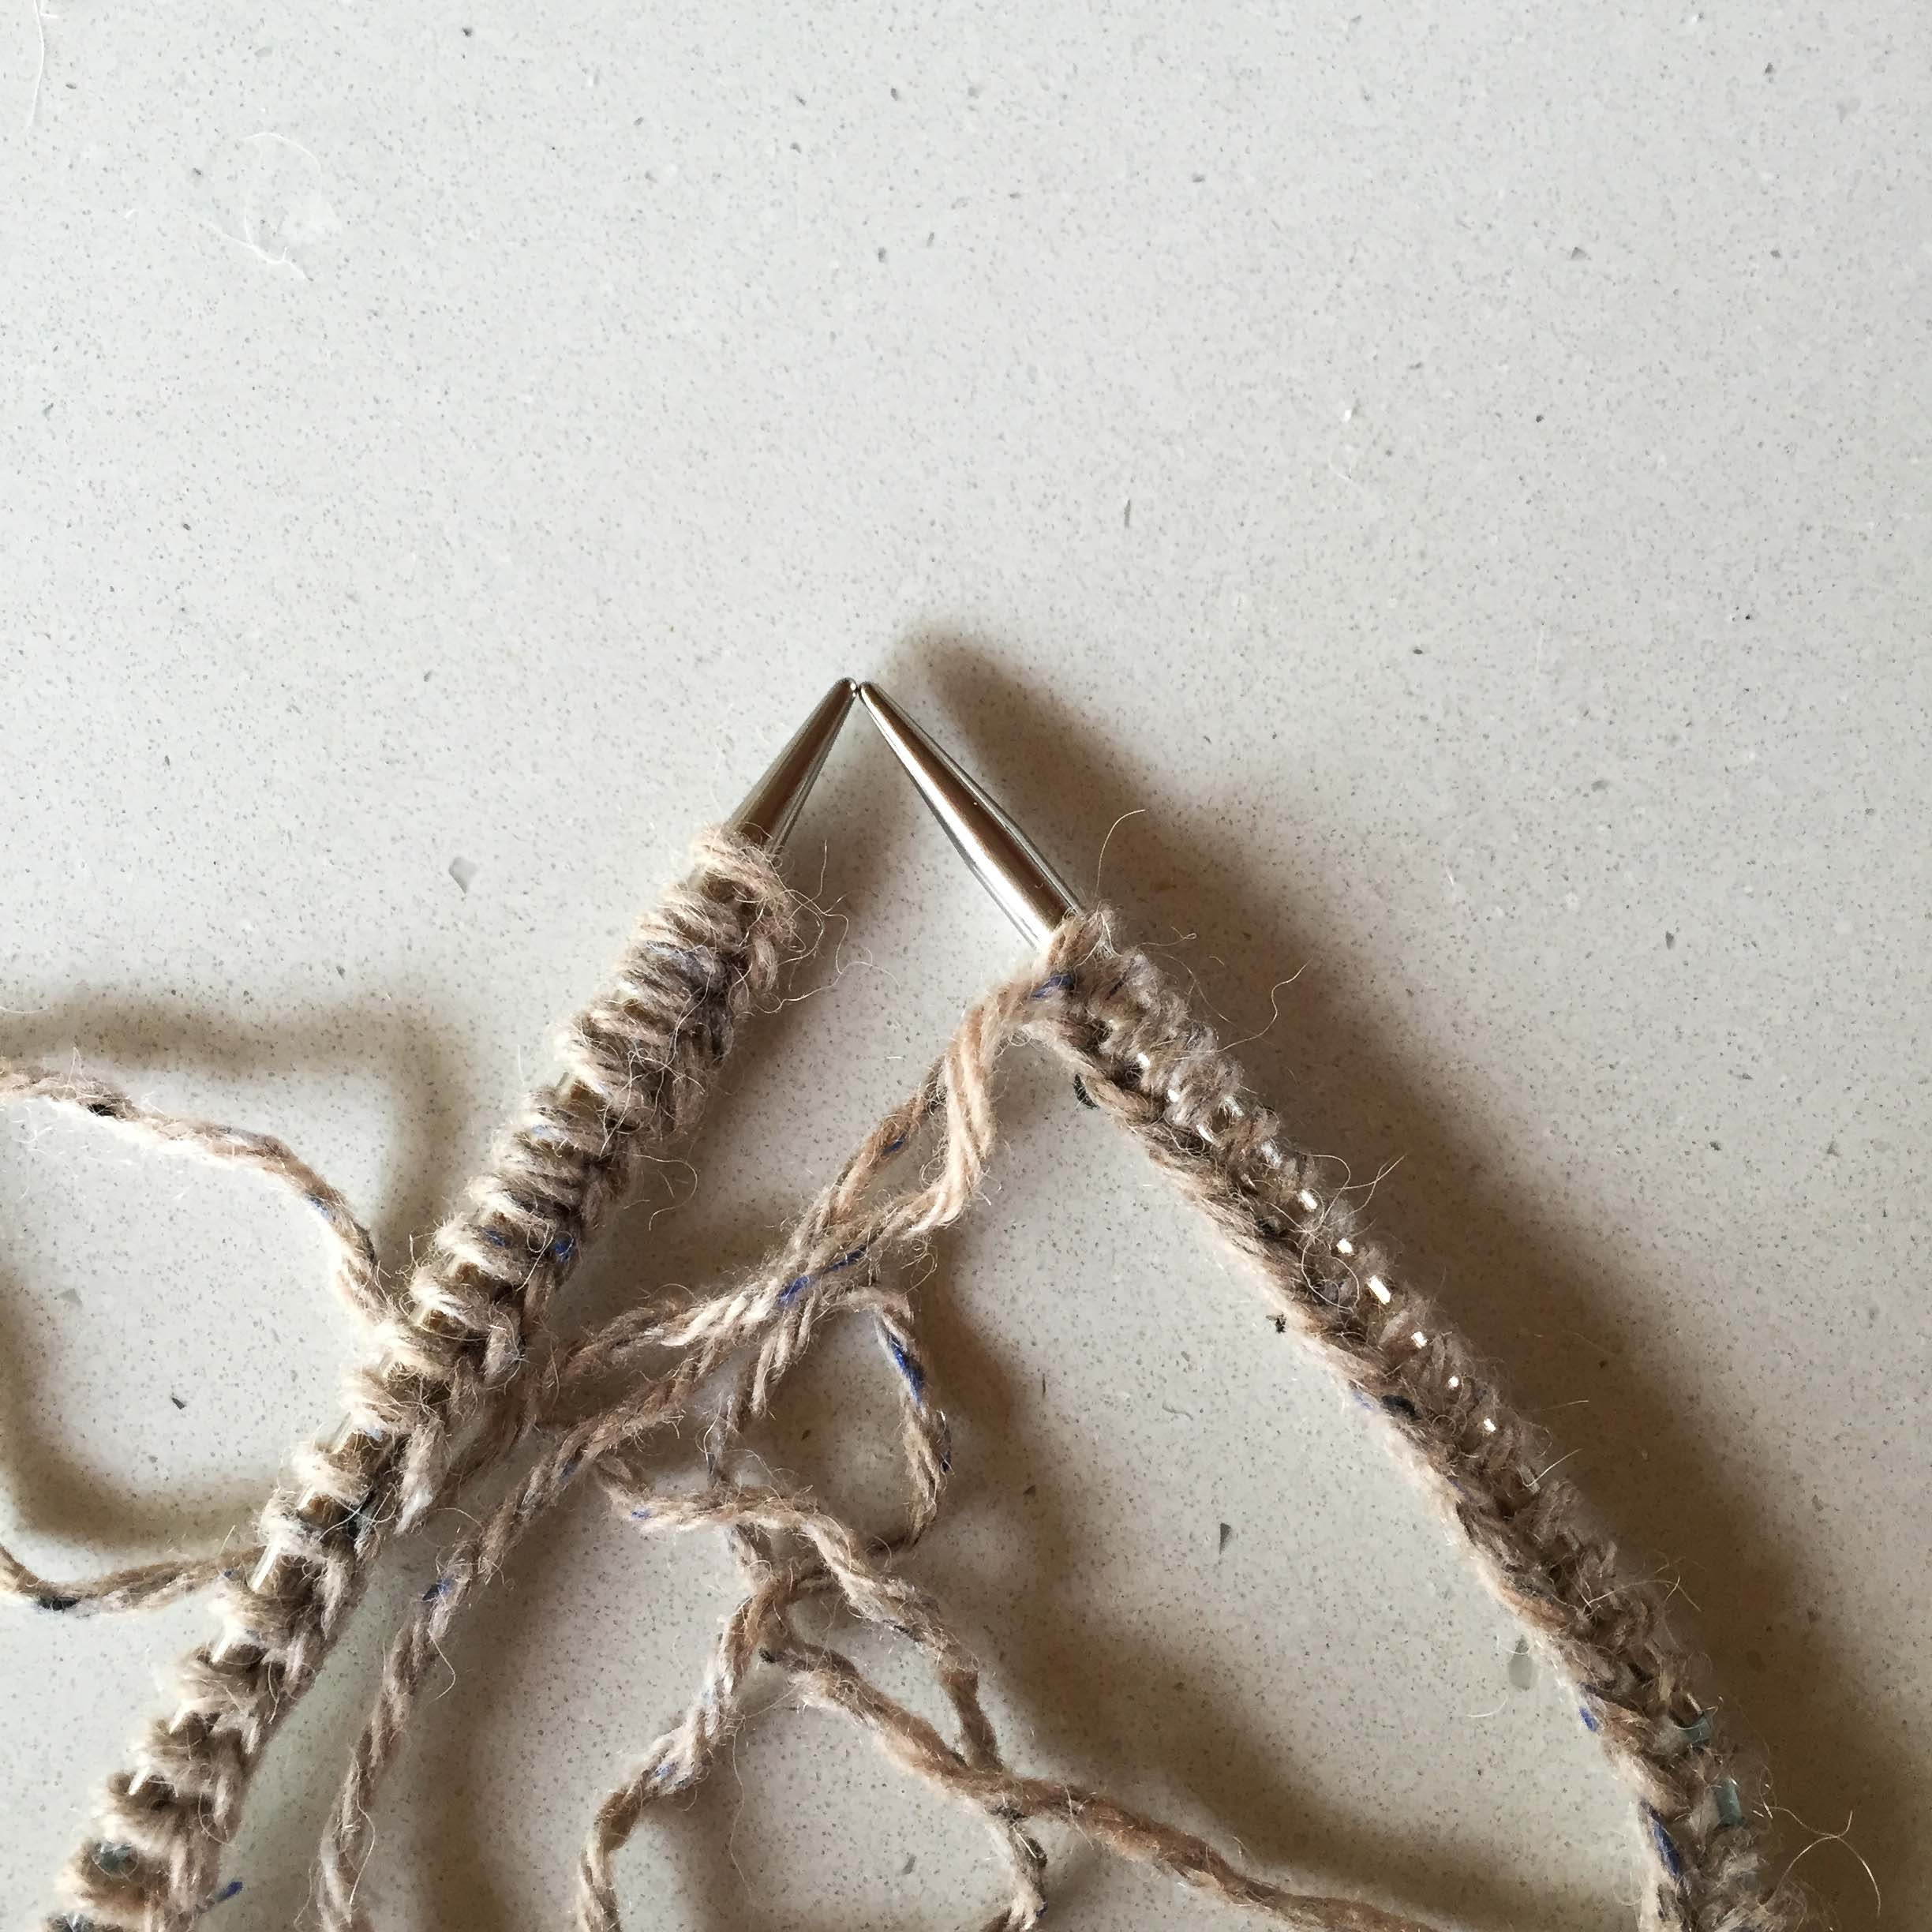 Cast on your stitches plus one extra stitch.